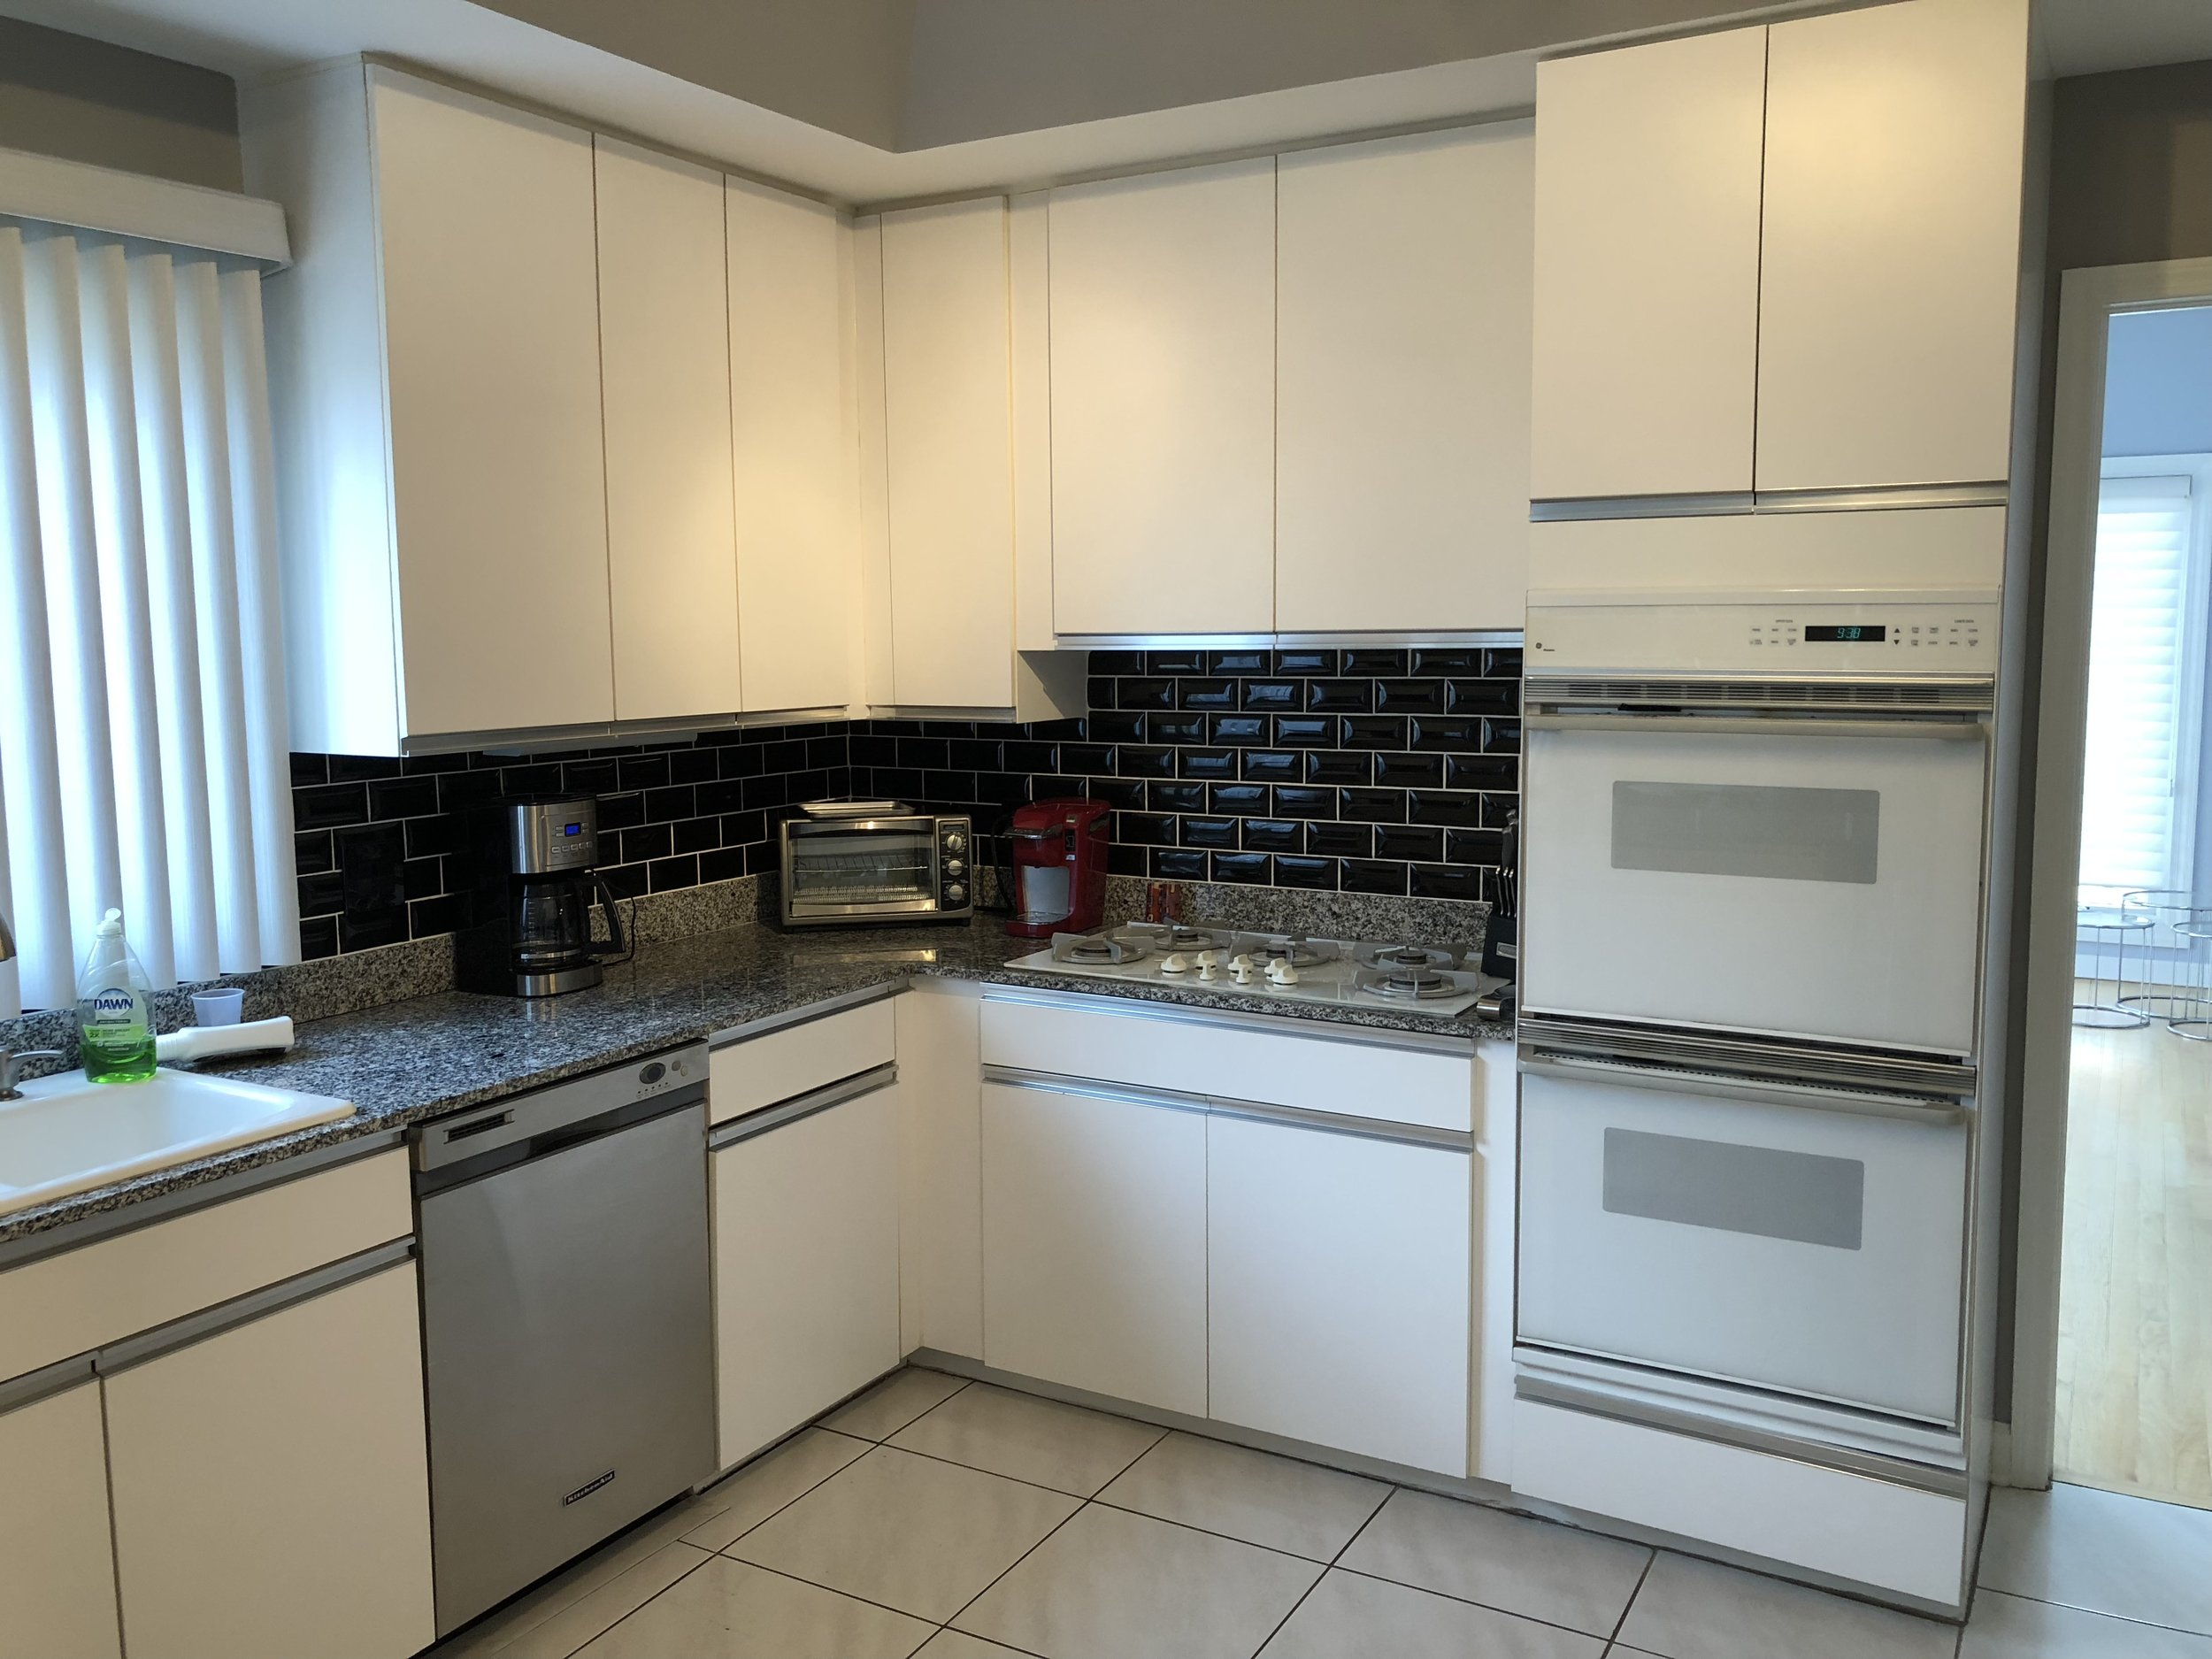 Great Complete White Kitchen Cabinets Liances Granite Counters Butler S Pantry Aid Ge Cooktop Wall Ovens Little Green Kitchens